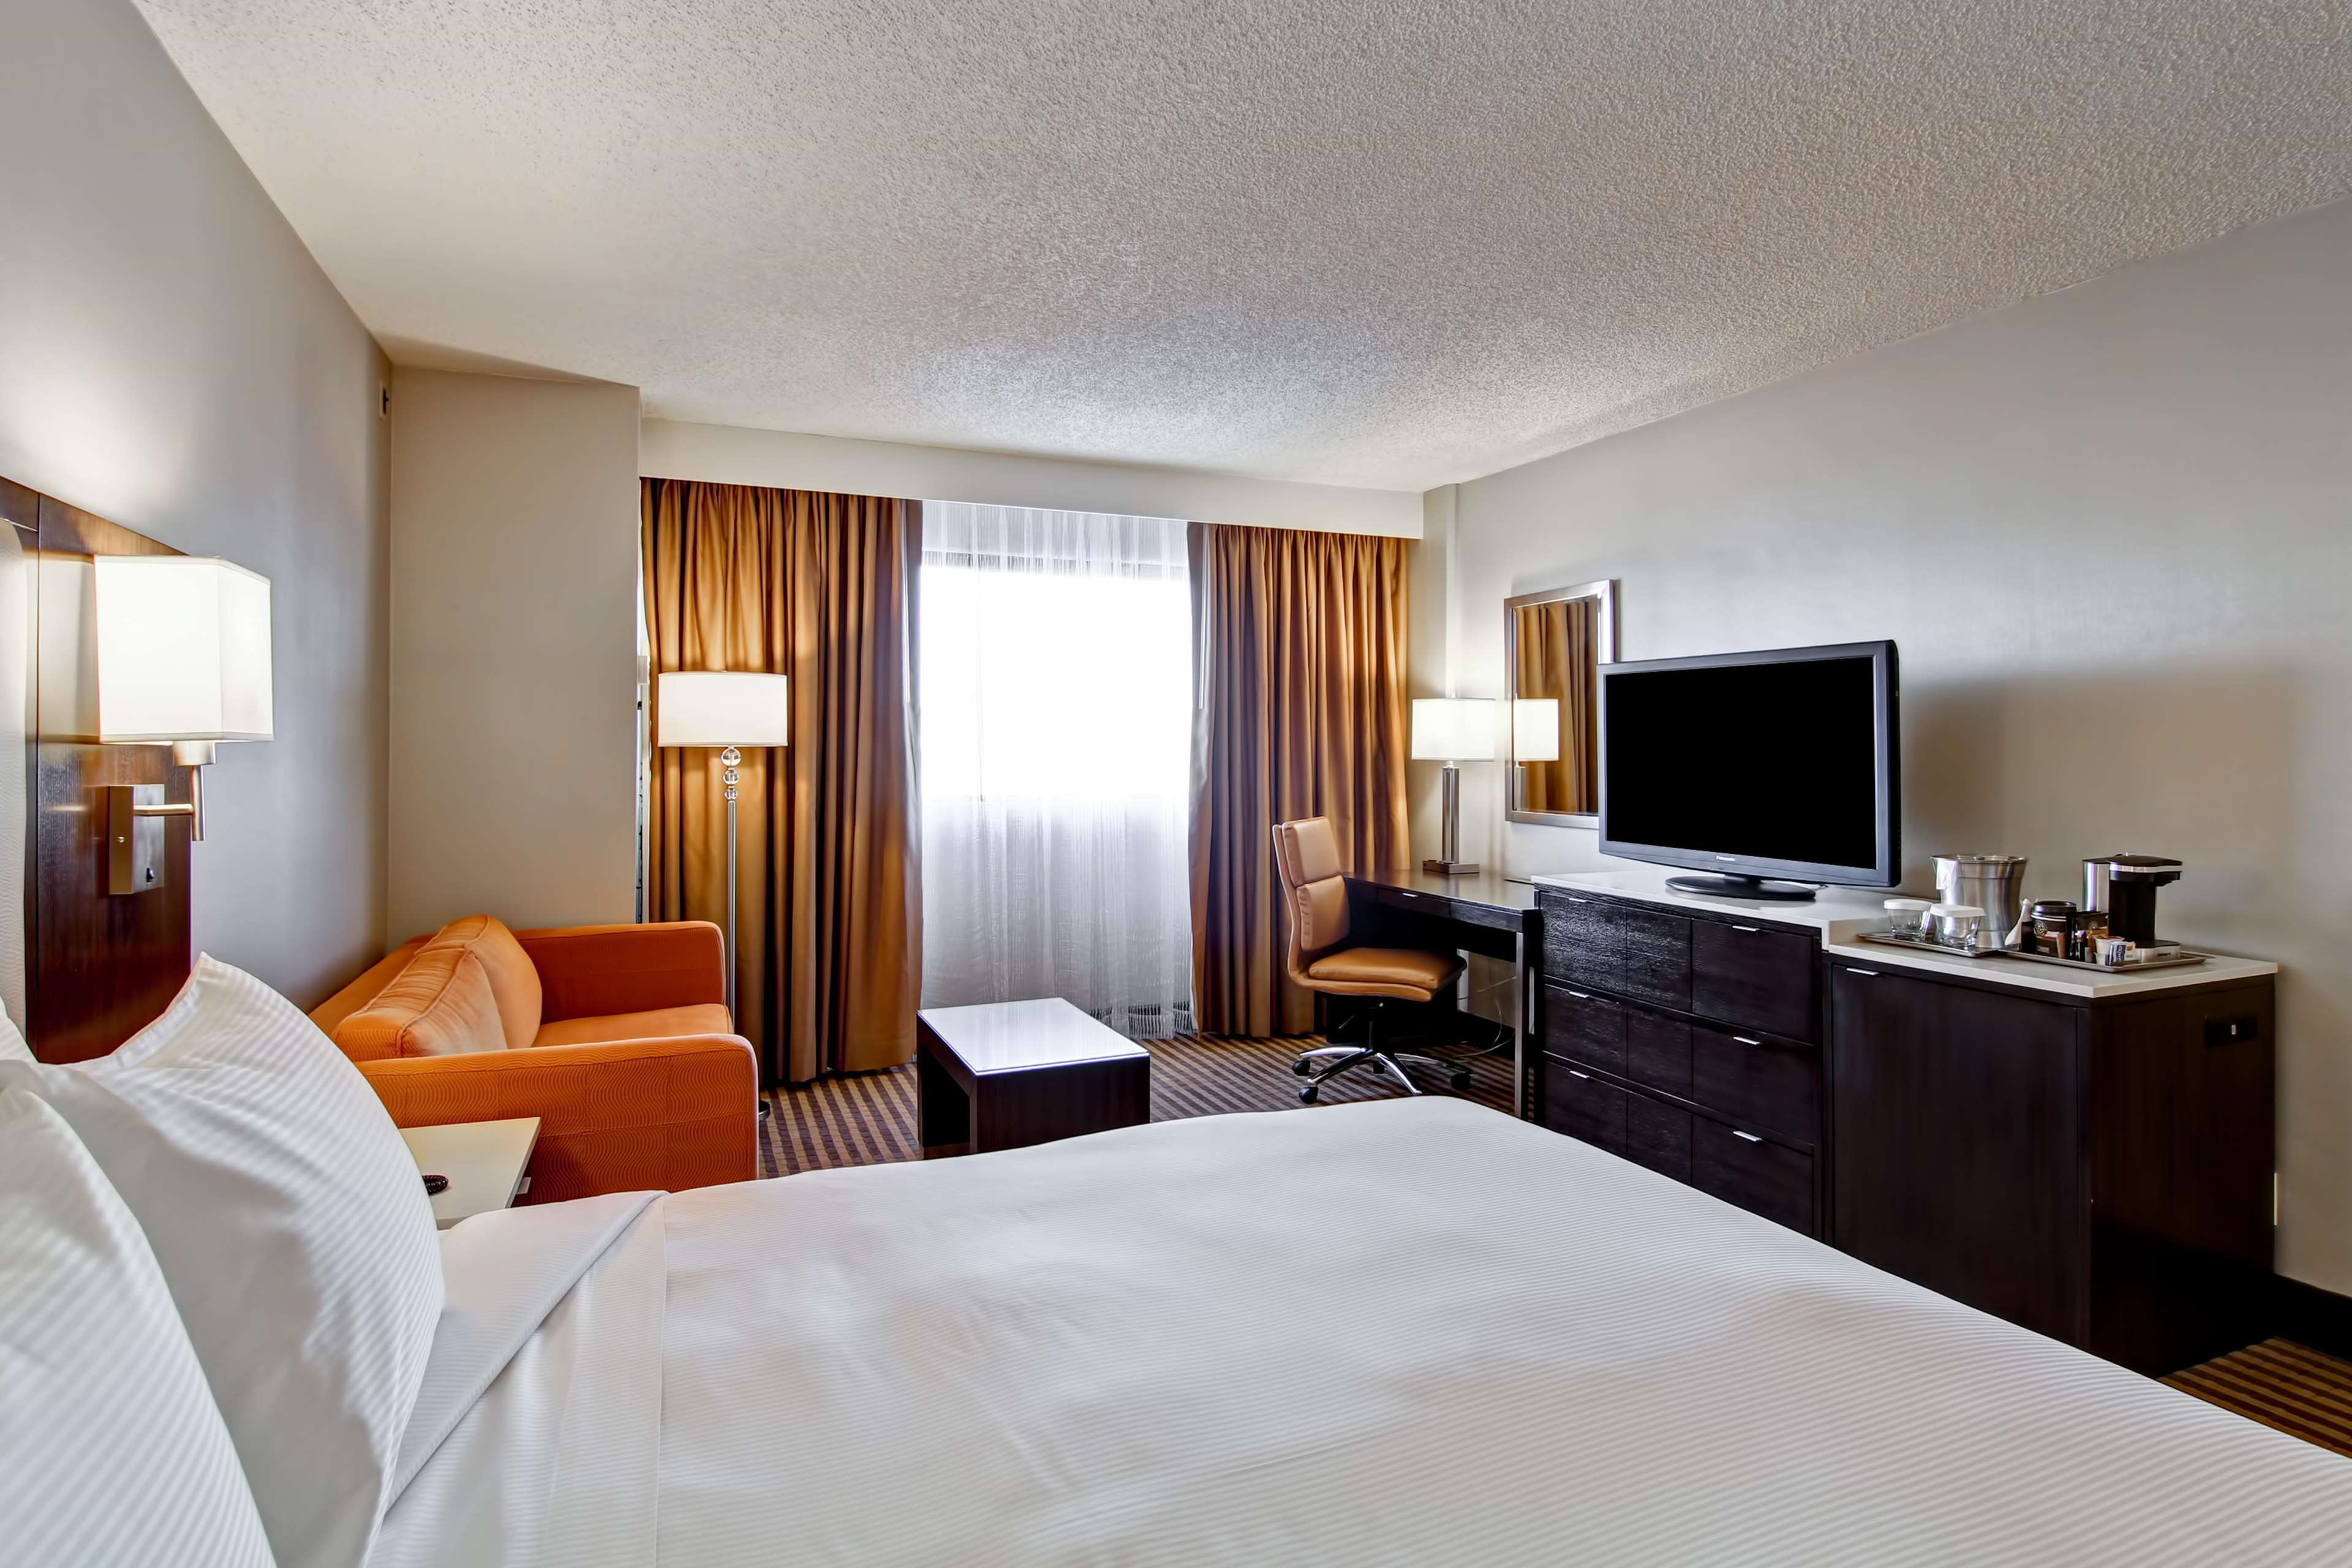 DoubleTree by Hilton Hotel Pleasanton at the Club image 40